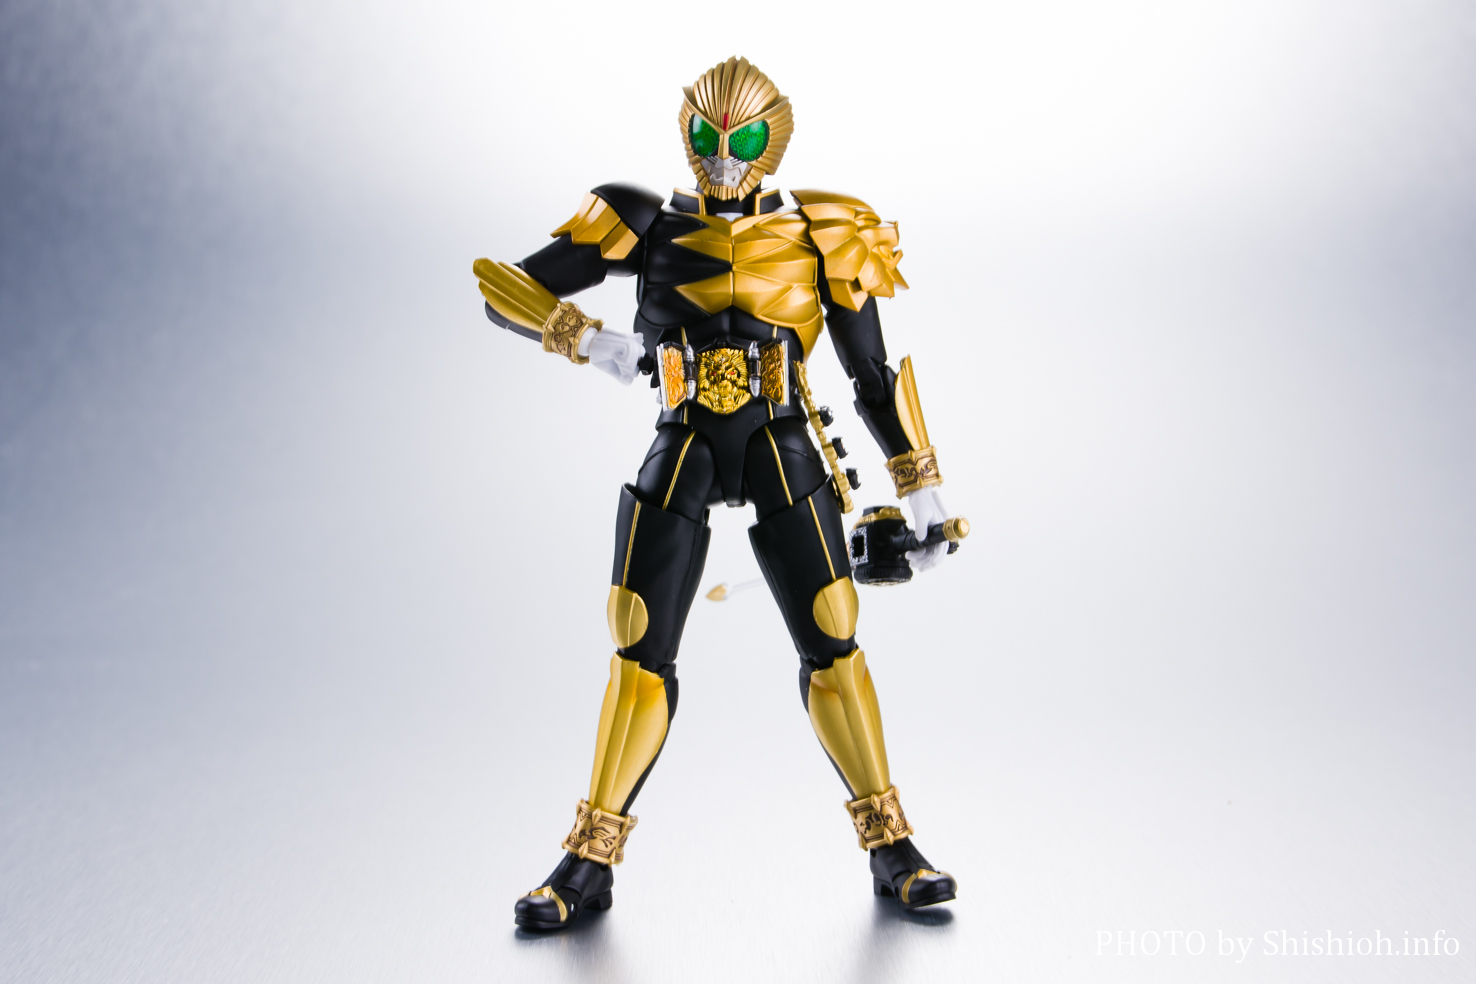 S.H.Figuarts(真骨彫製法)仮面ライダービースト